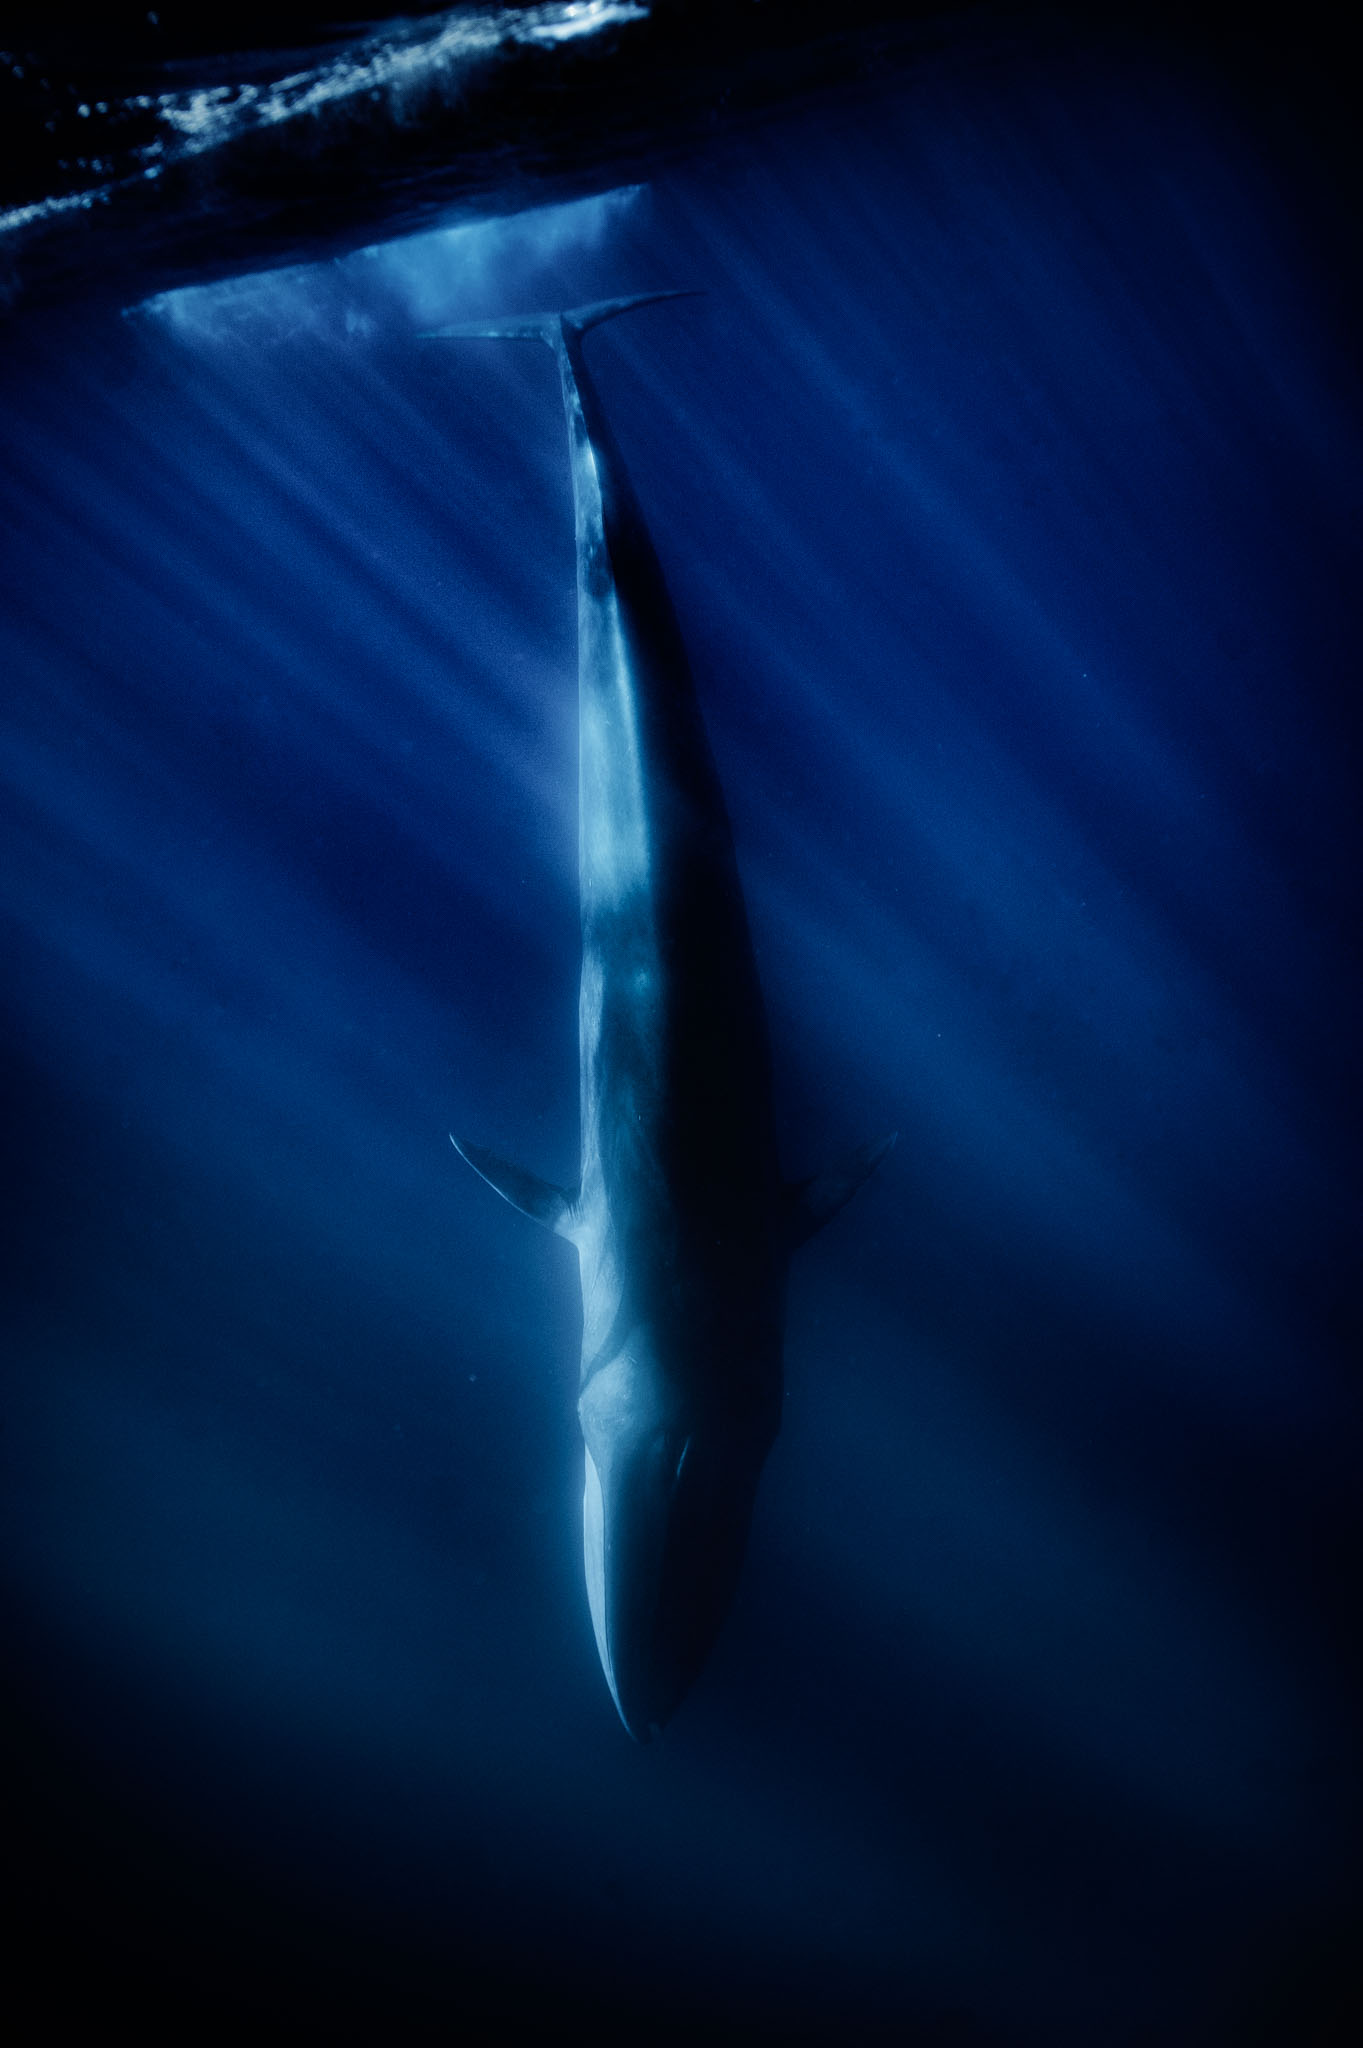 A fIn whale (Balaenoptera physalus)plunging near Lampedusa.It is the second largest animal after the blue whale. The largest reportedly grow to 27.3m.Sicily, Italy. 2017